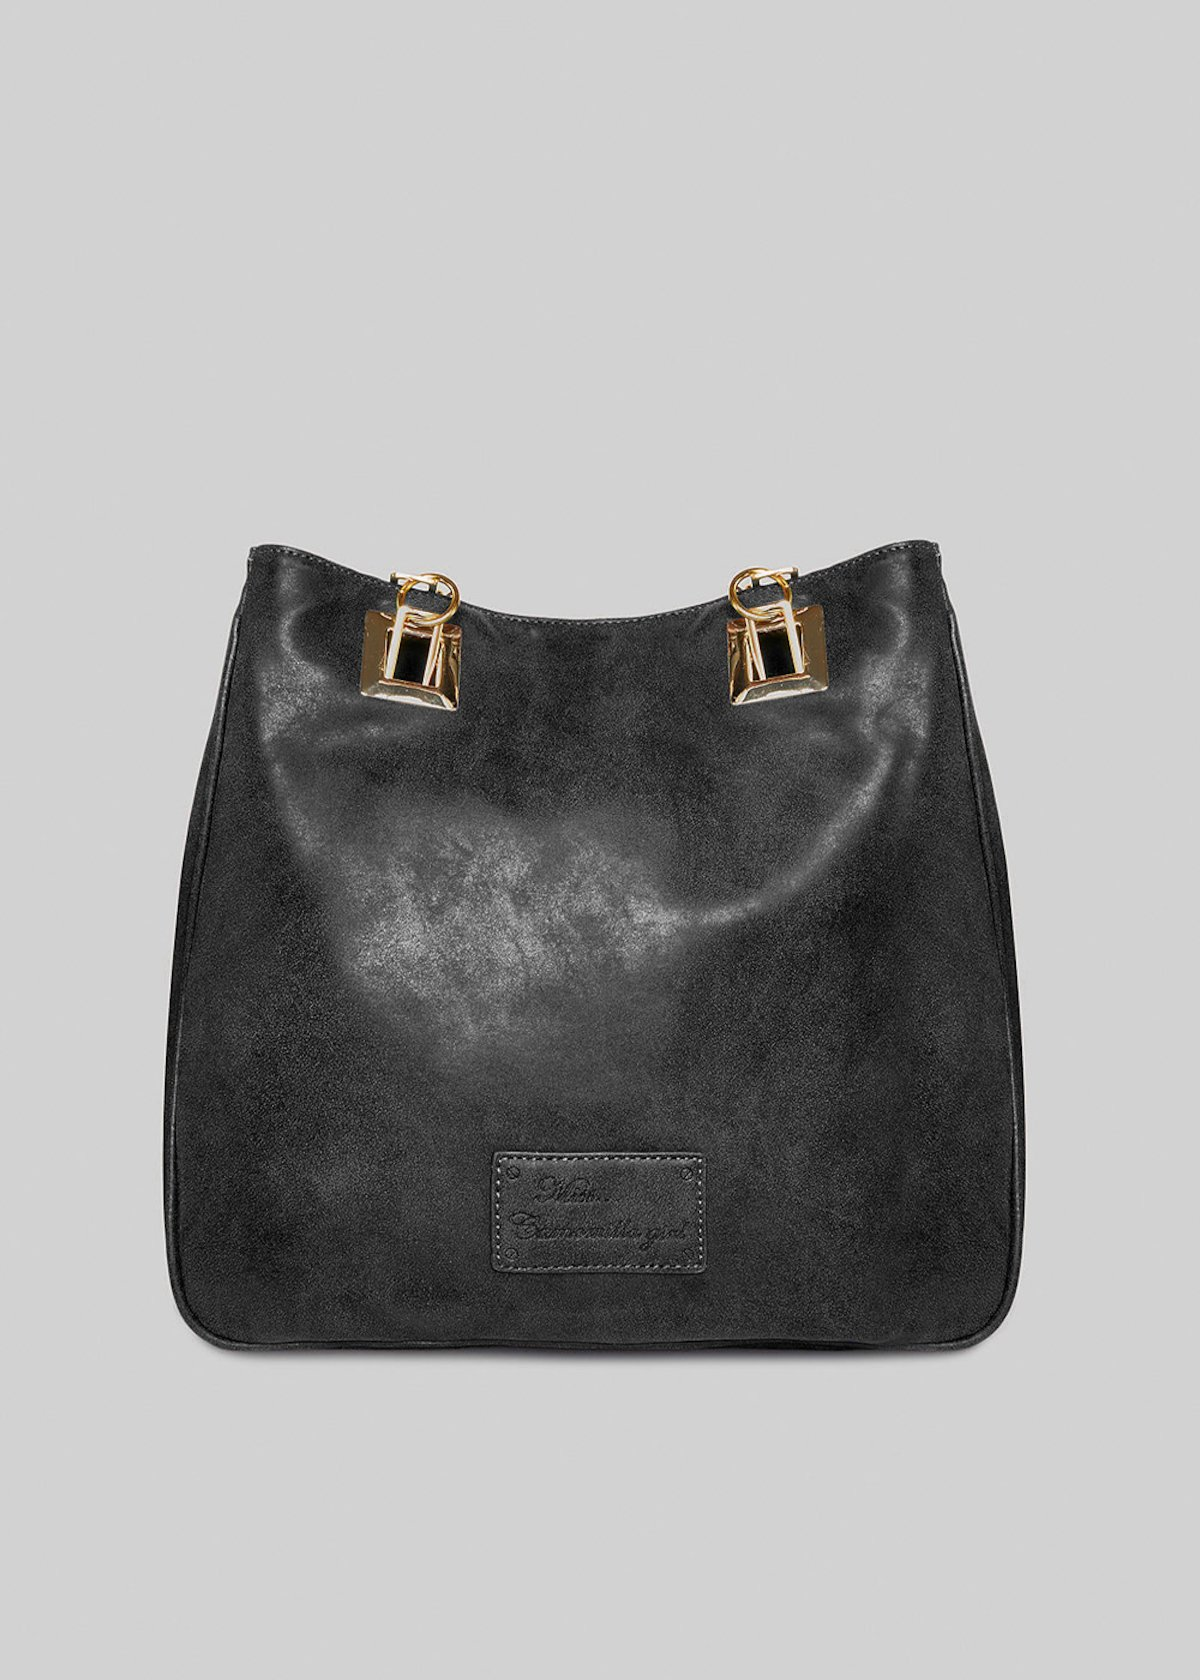 Mmissbruss faux leather shopping bag with gold square eyelets